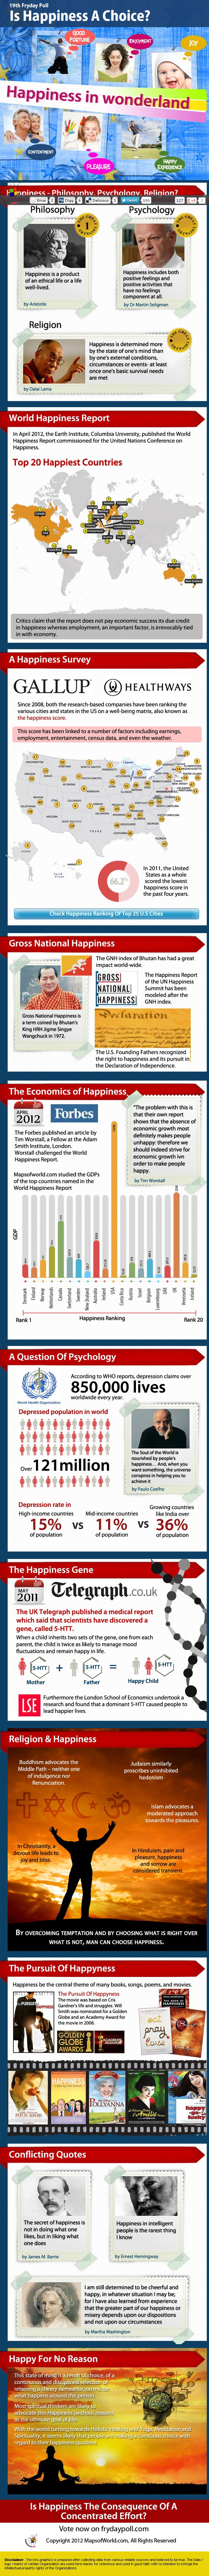 Is Happiness A Choice? Find In-Depth Review And Infographic. Learn more about world happiness report, results from happiness survey, Gross National Happiness, the economics of happiness, the Happiness Gene, religion & happiness and the Pursuit Of Happynes